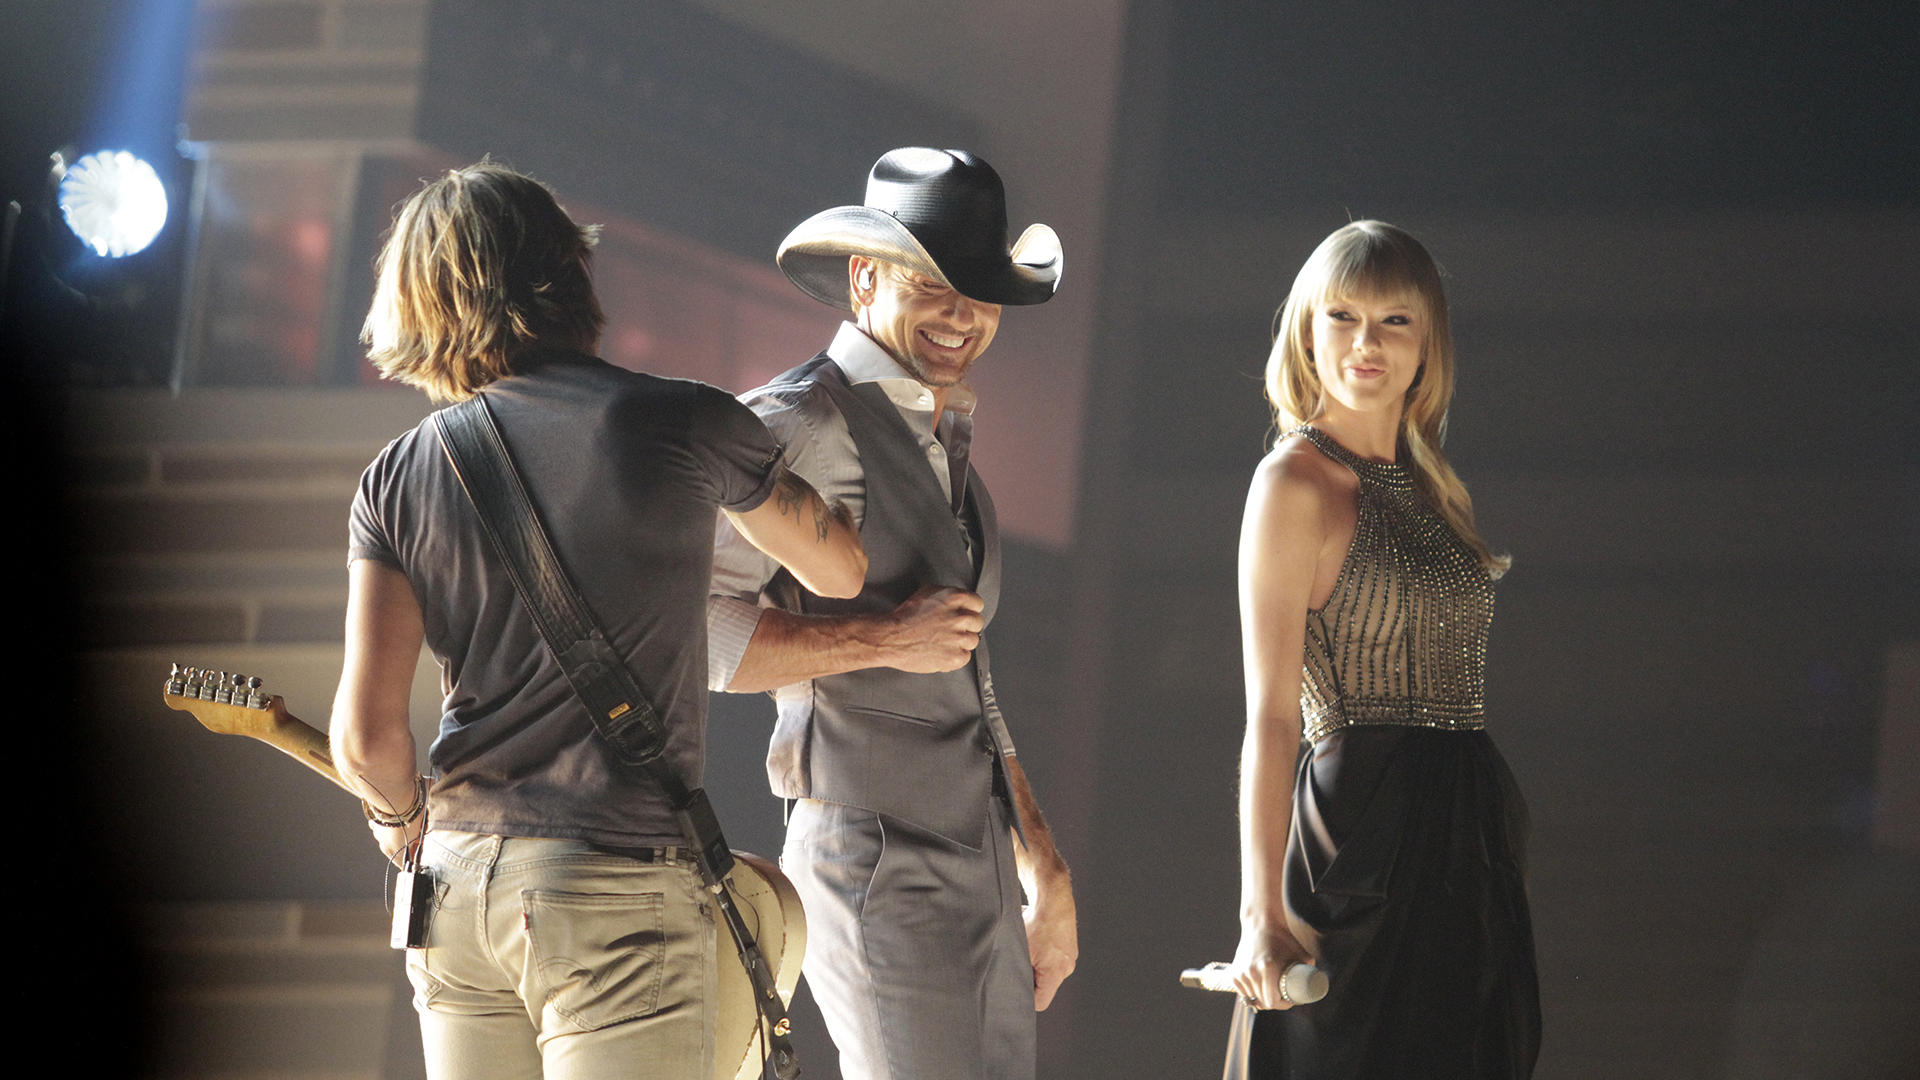 26. Tim McGraw, Taylor Swift, and Keith Urban perform